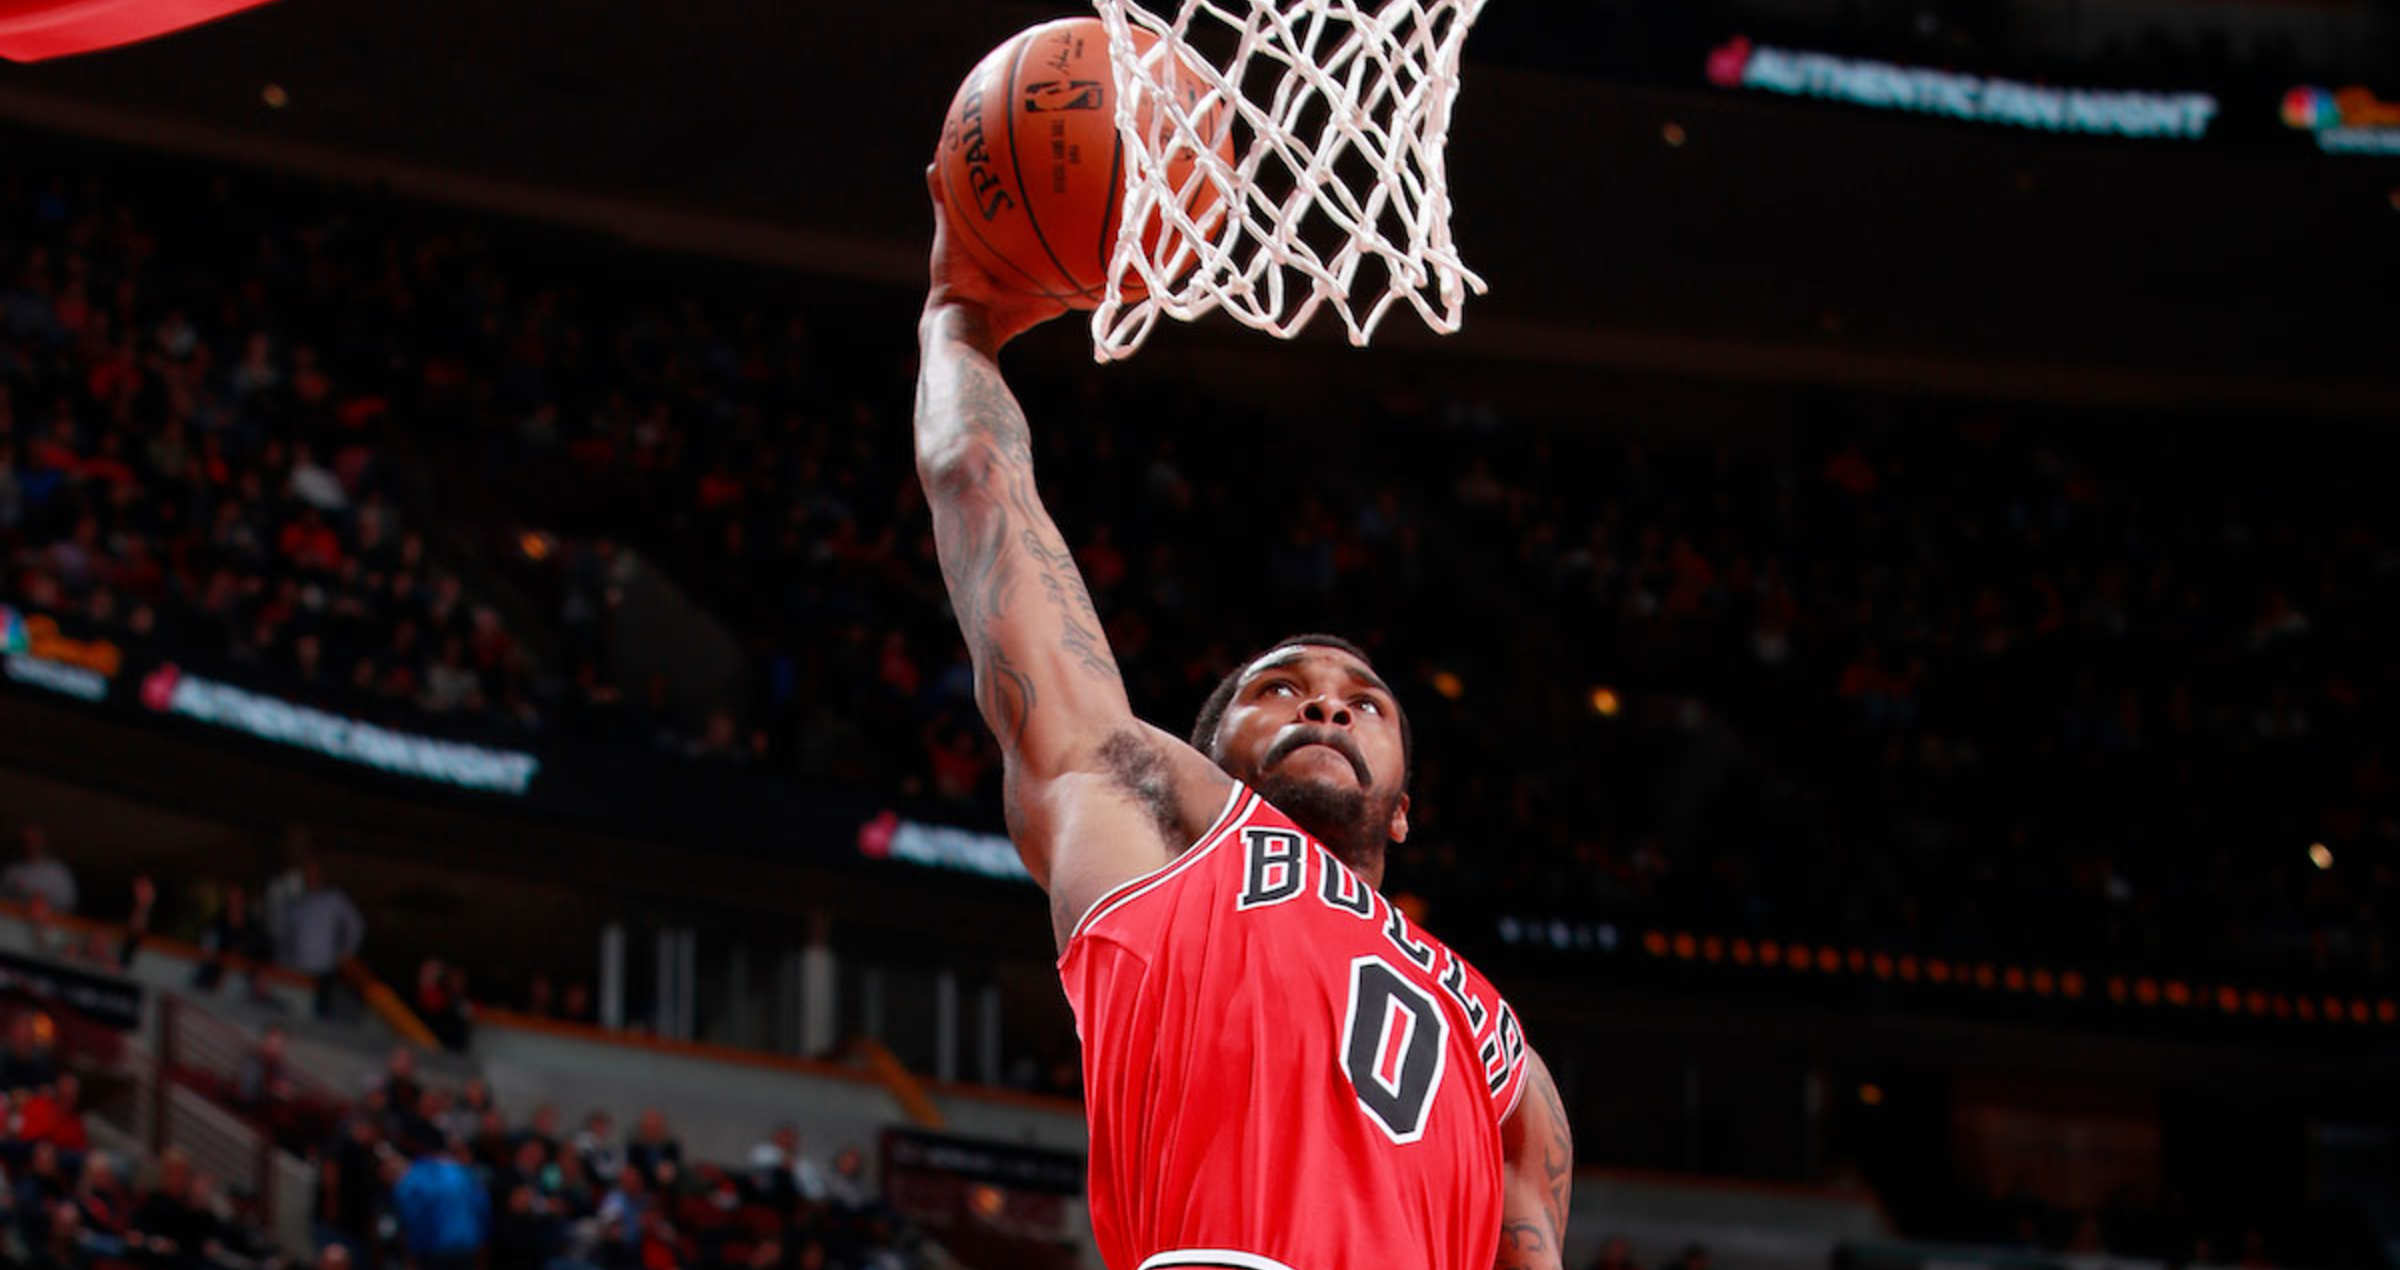 d85bddb7ff42 Sean Kilpatrick  0 of the Chicago Bulls goes up for a dunk against the  Charlotte